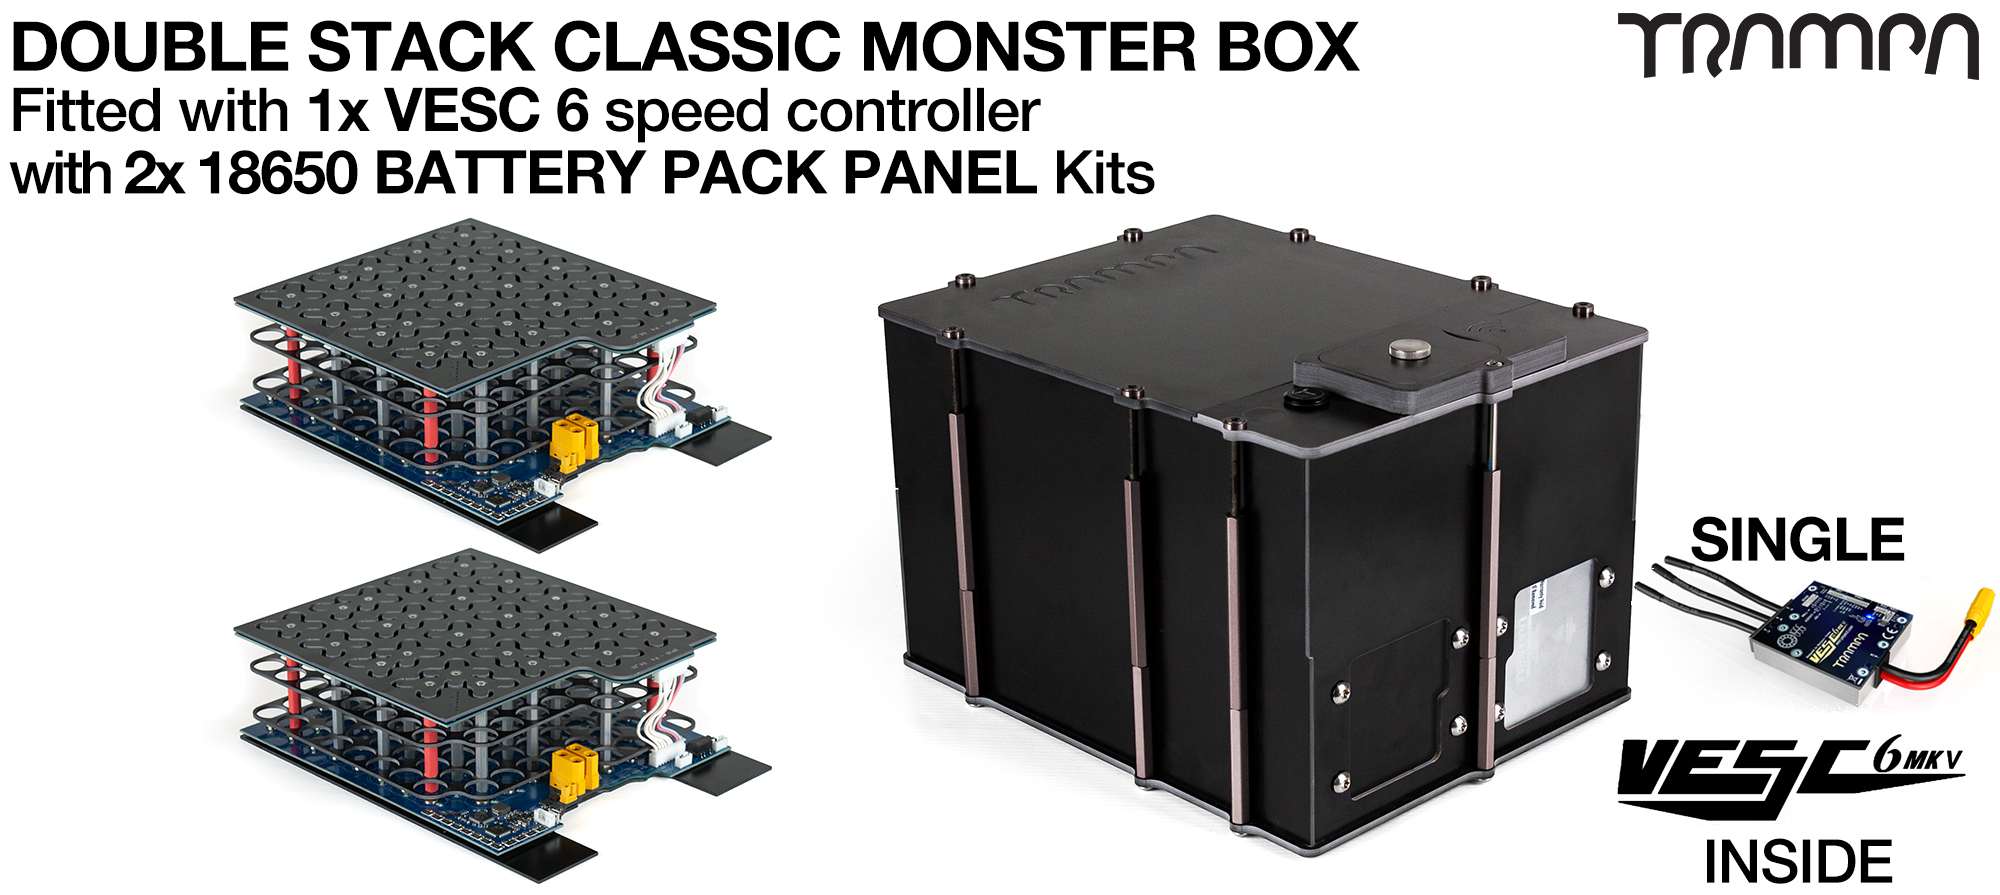 Classic MONSTER Box MkV DOUBLE STACKER - with 18650 PCB Pack & 1x VESC 6 NRF fitted PCB based Battery Pack has Integrated Battery Management System (BMS) - NO Cells